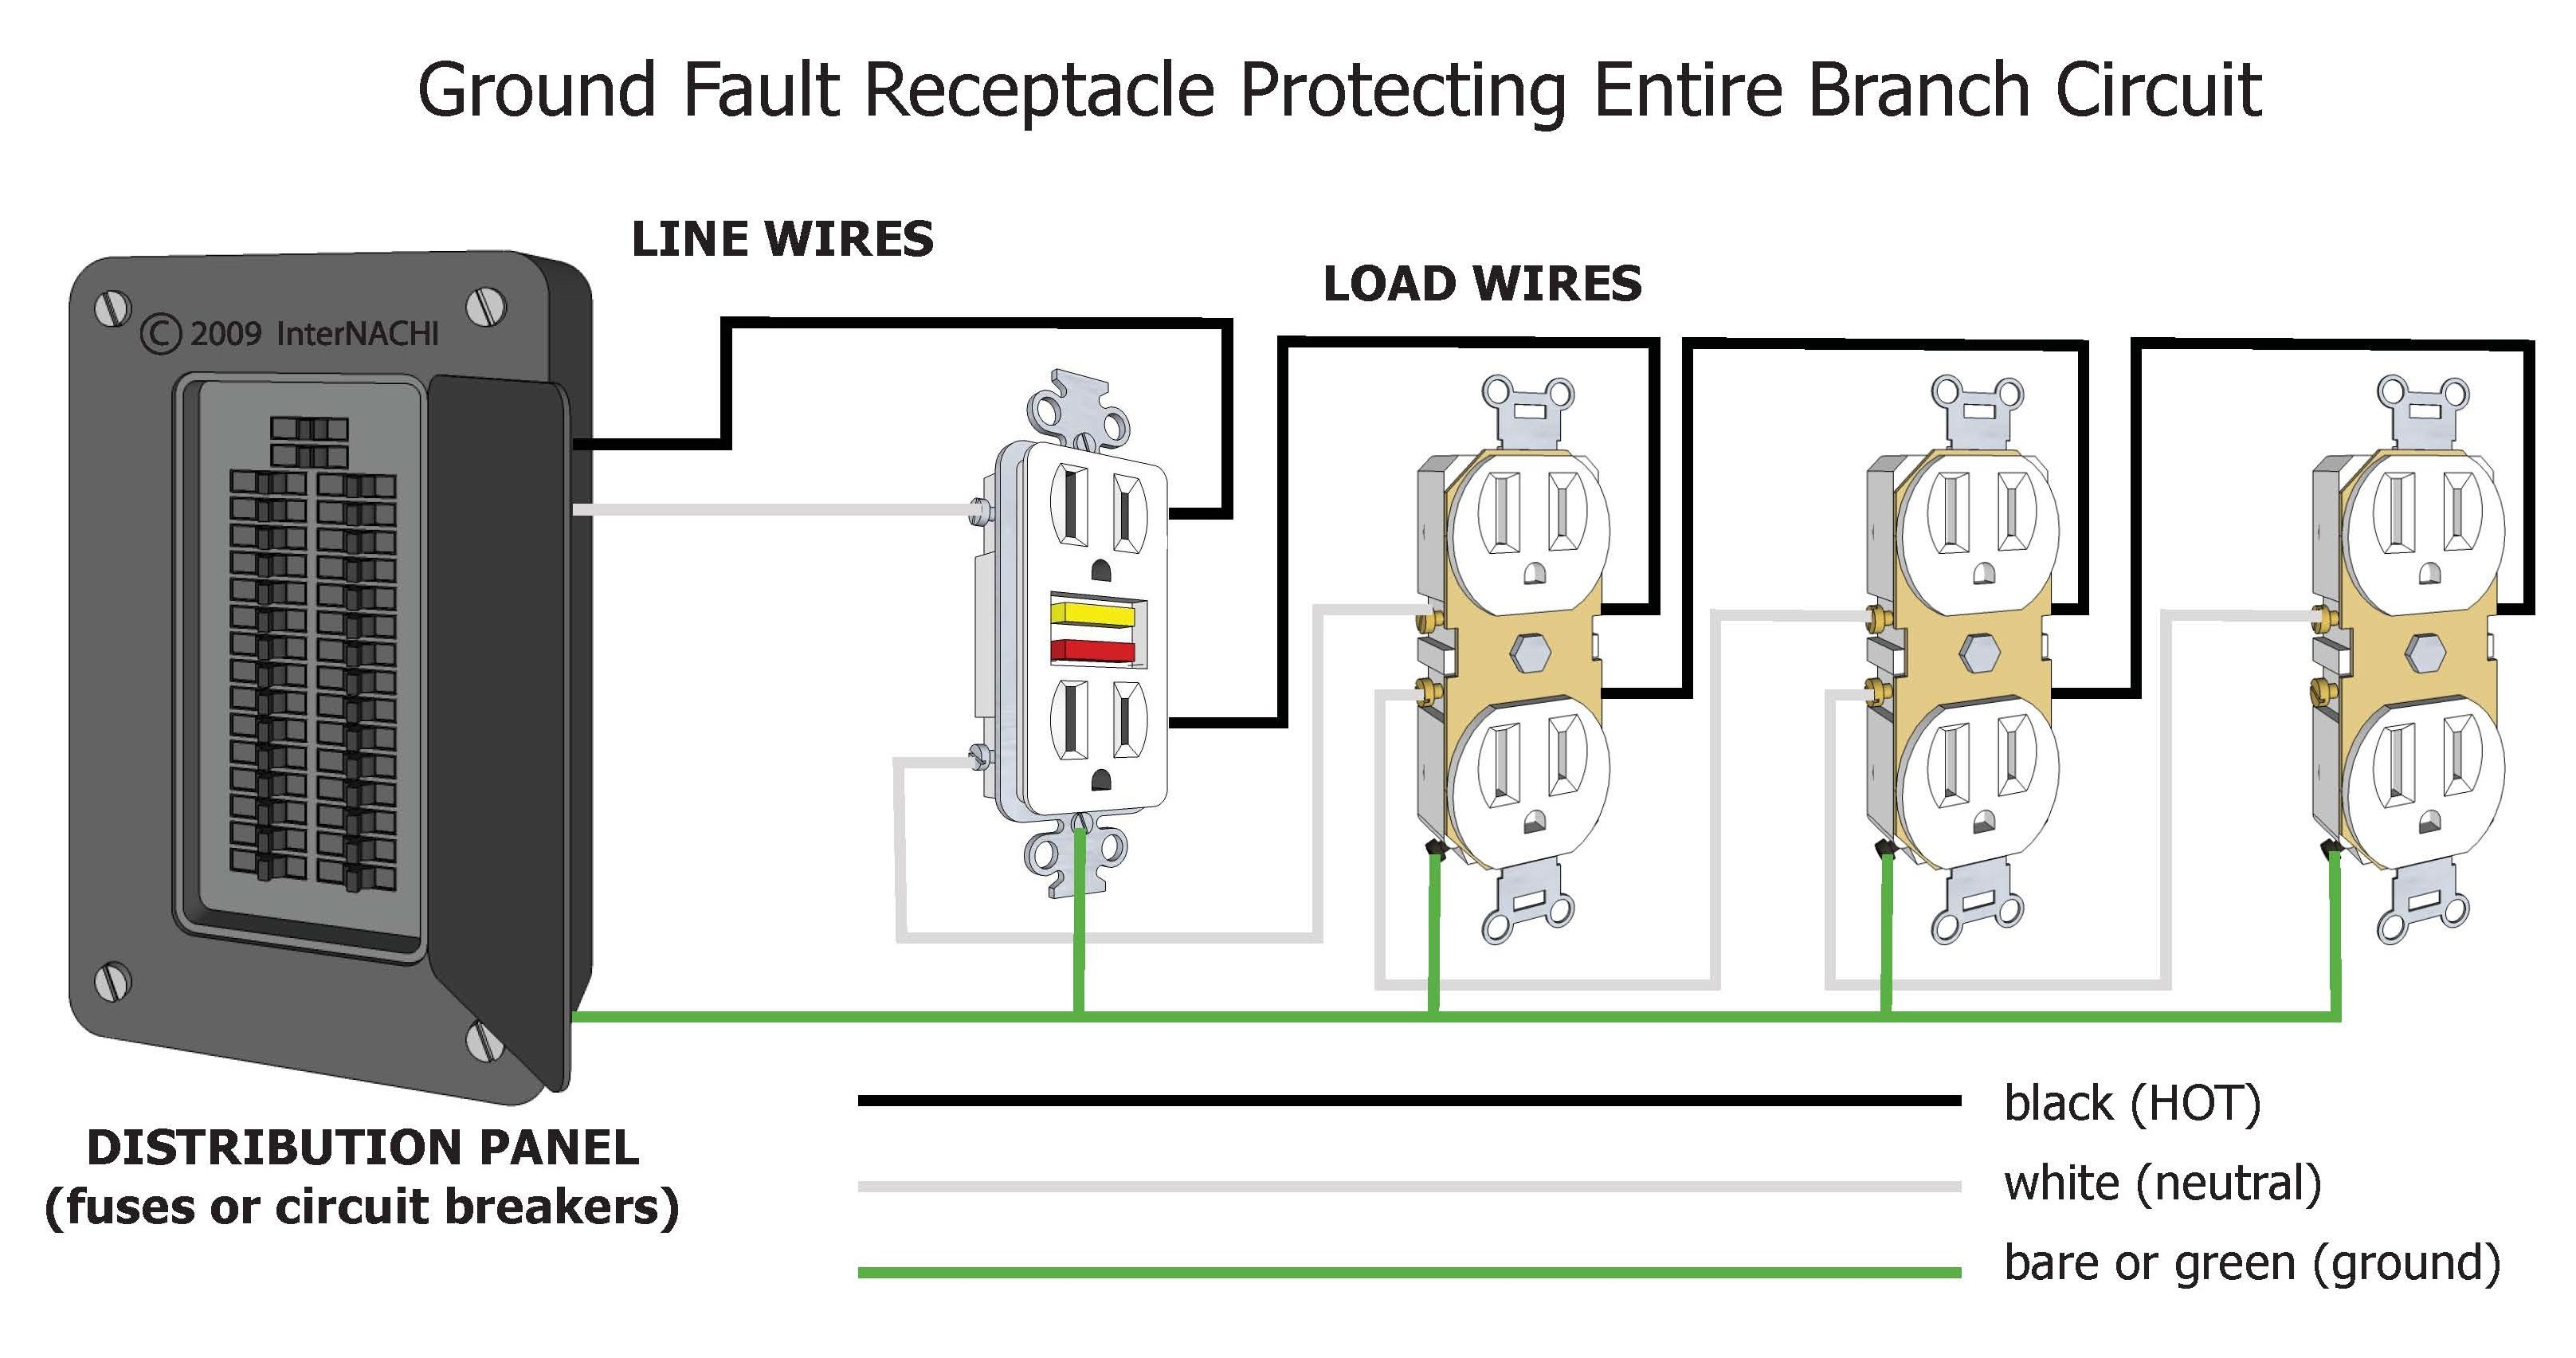 gfci branch circuit color gfci breaker wiring diagram efcaviation com circuit breaker wiring diagram at highcare.asia